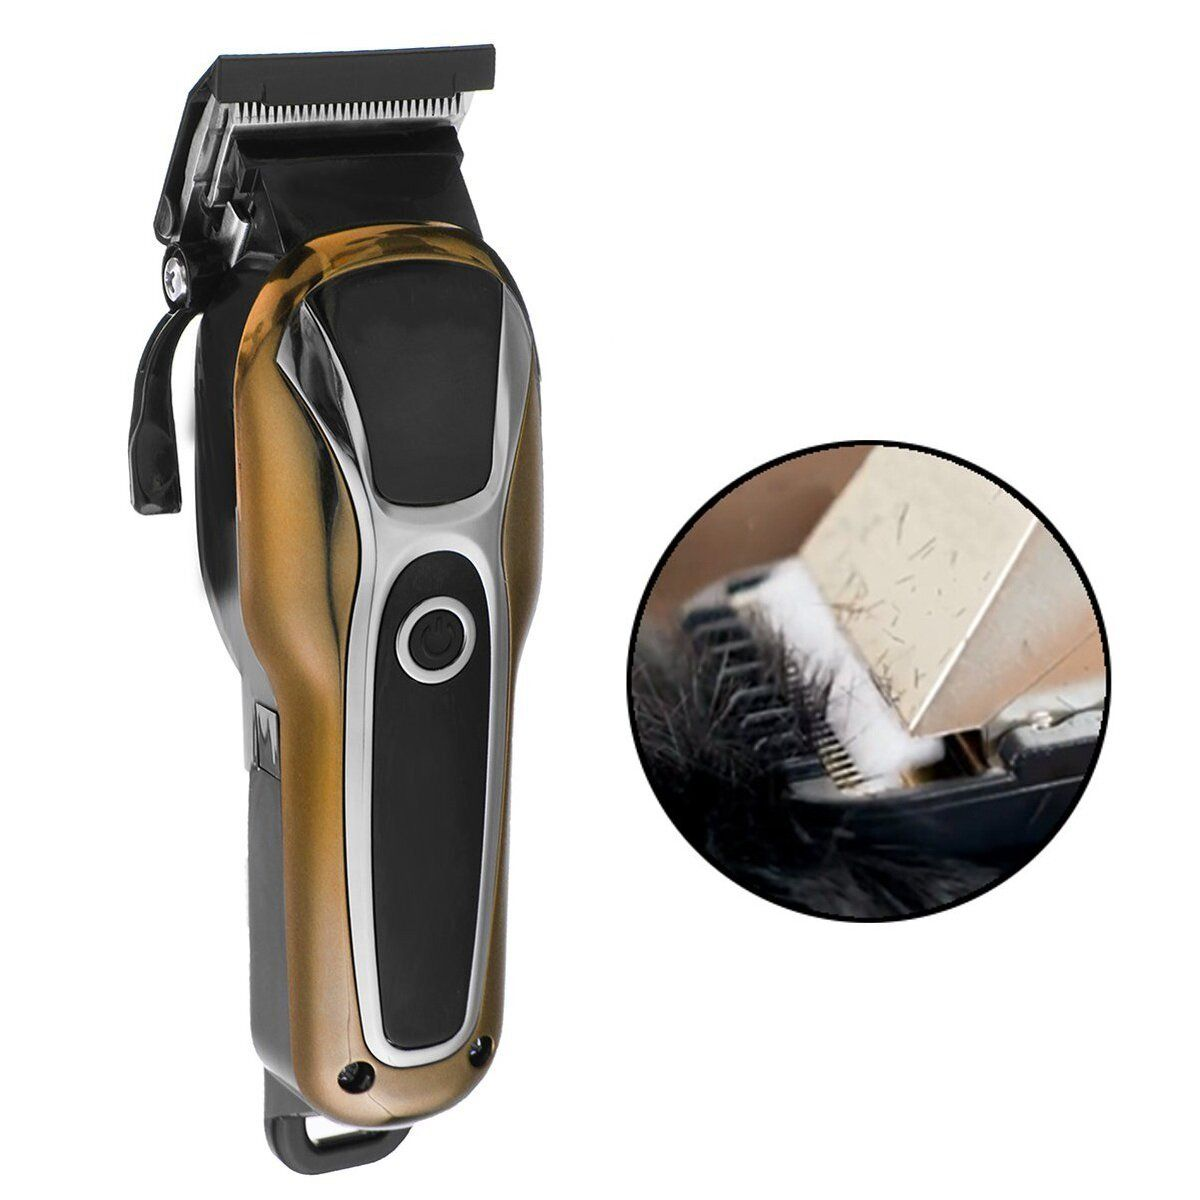 Surker SK 803 LCD Display Electric Hair Clipper High Power Detachable Head Cutting Comb